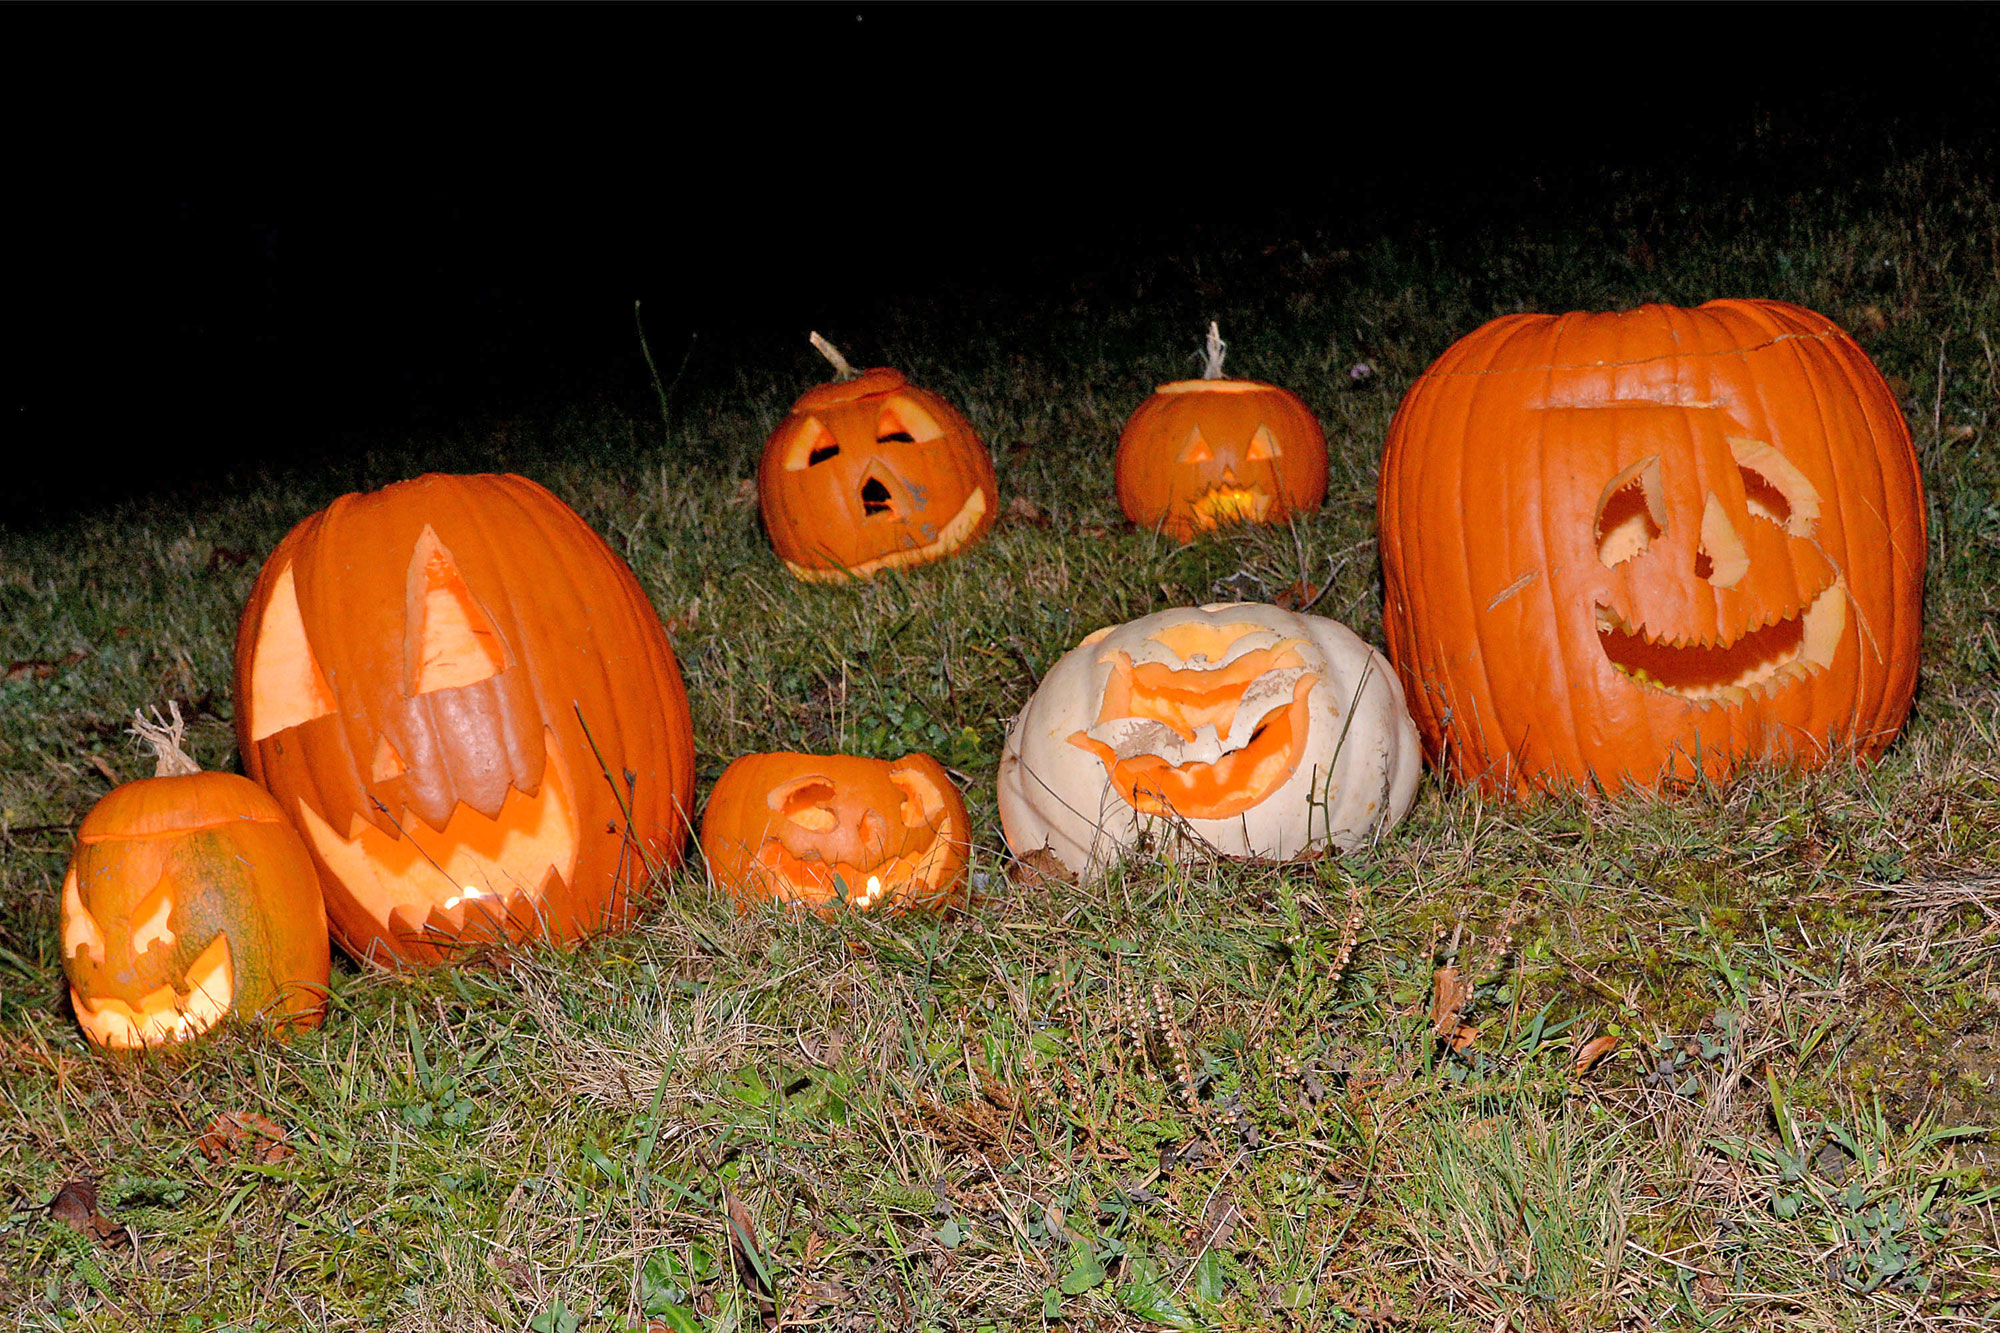 halloween in germany: events, costumes and traditions